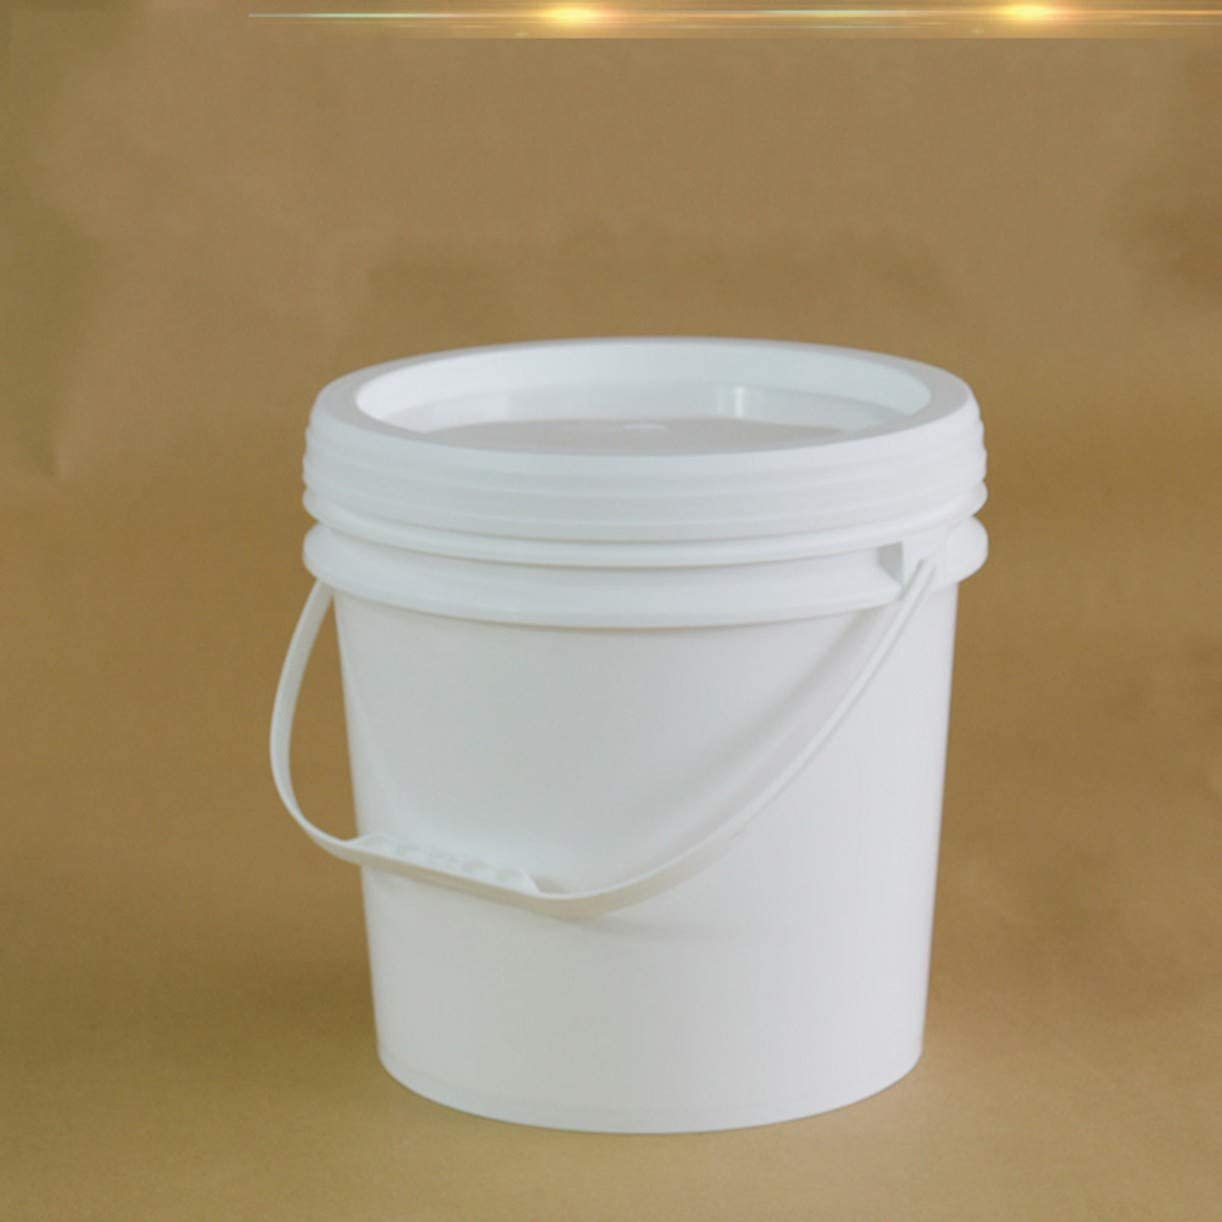 Lowest price challenge WellieSTR 2 Pack 10L White Plastic Ranking TOP7 Lid and with Handle Bucket